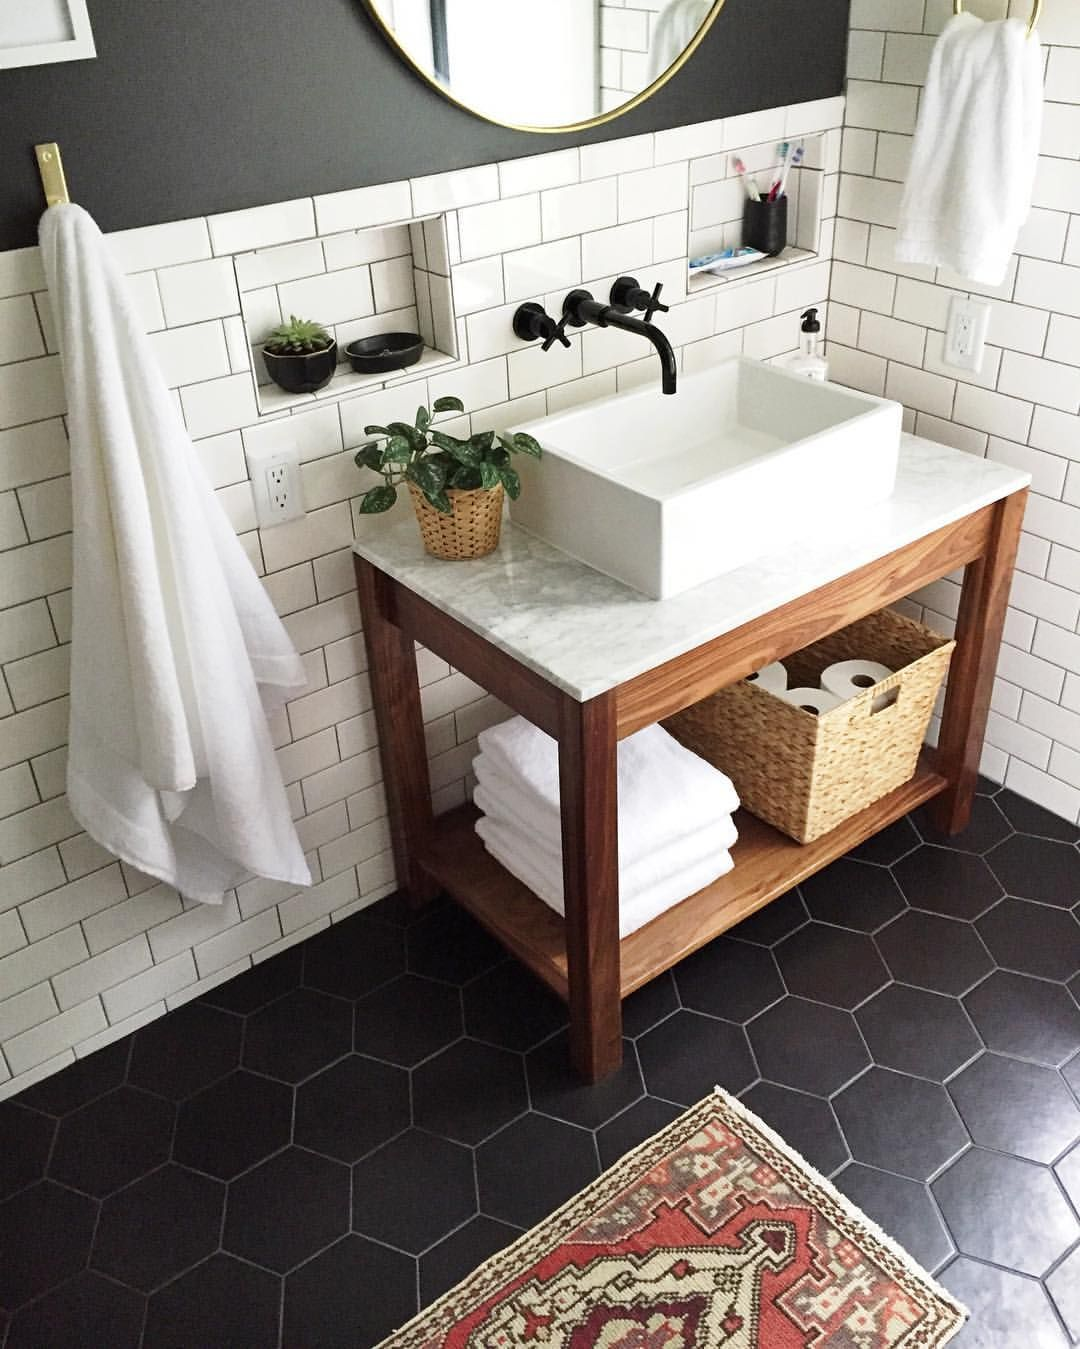 #smallbathroomremodel